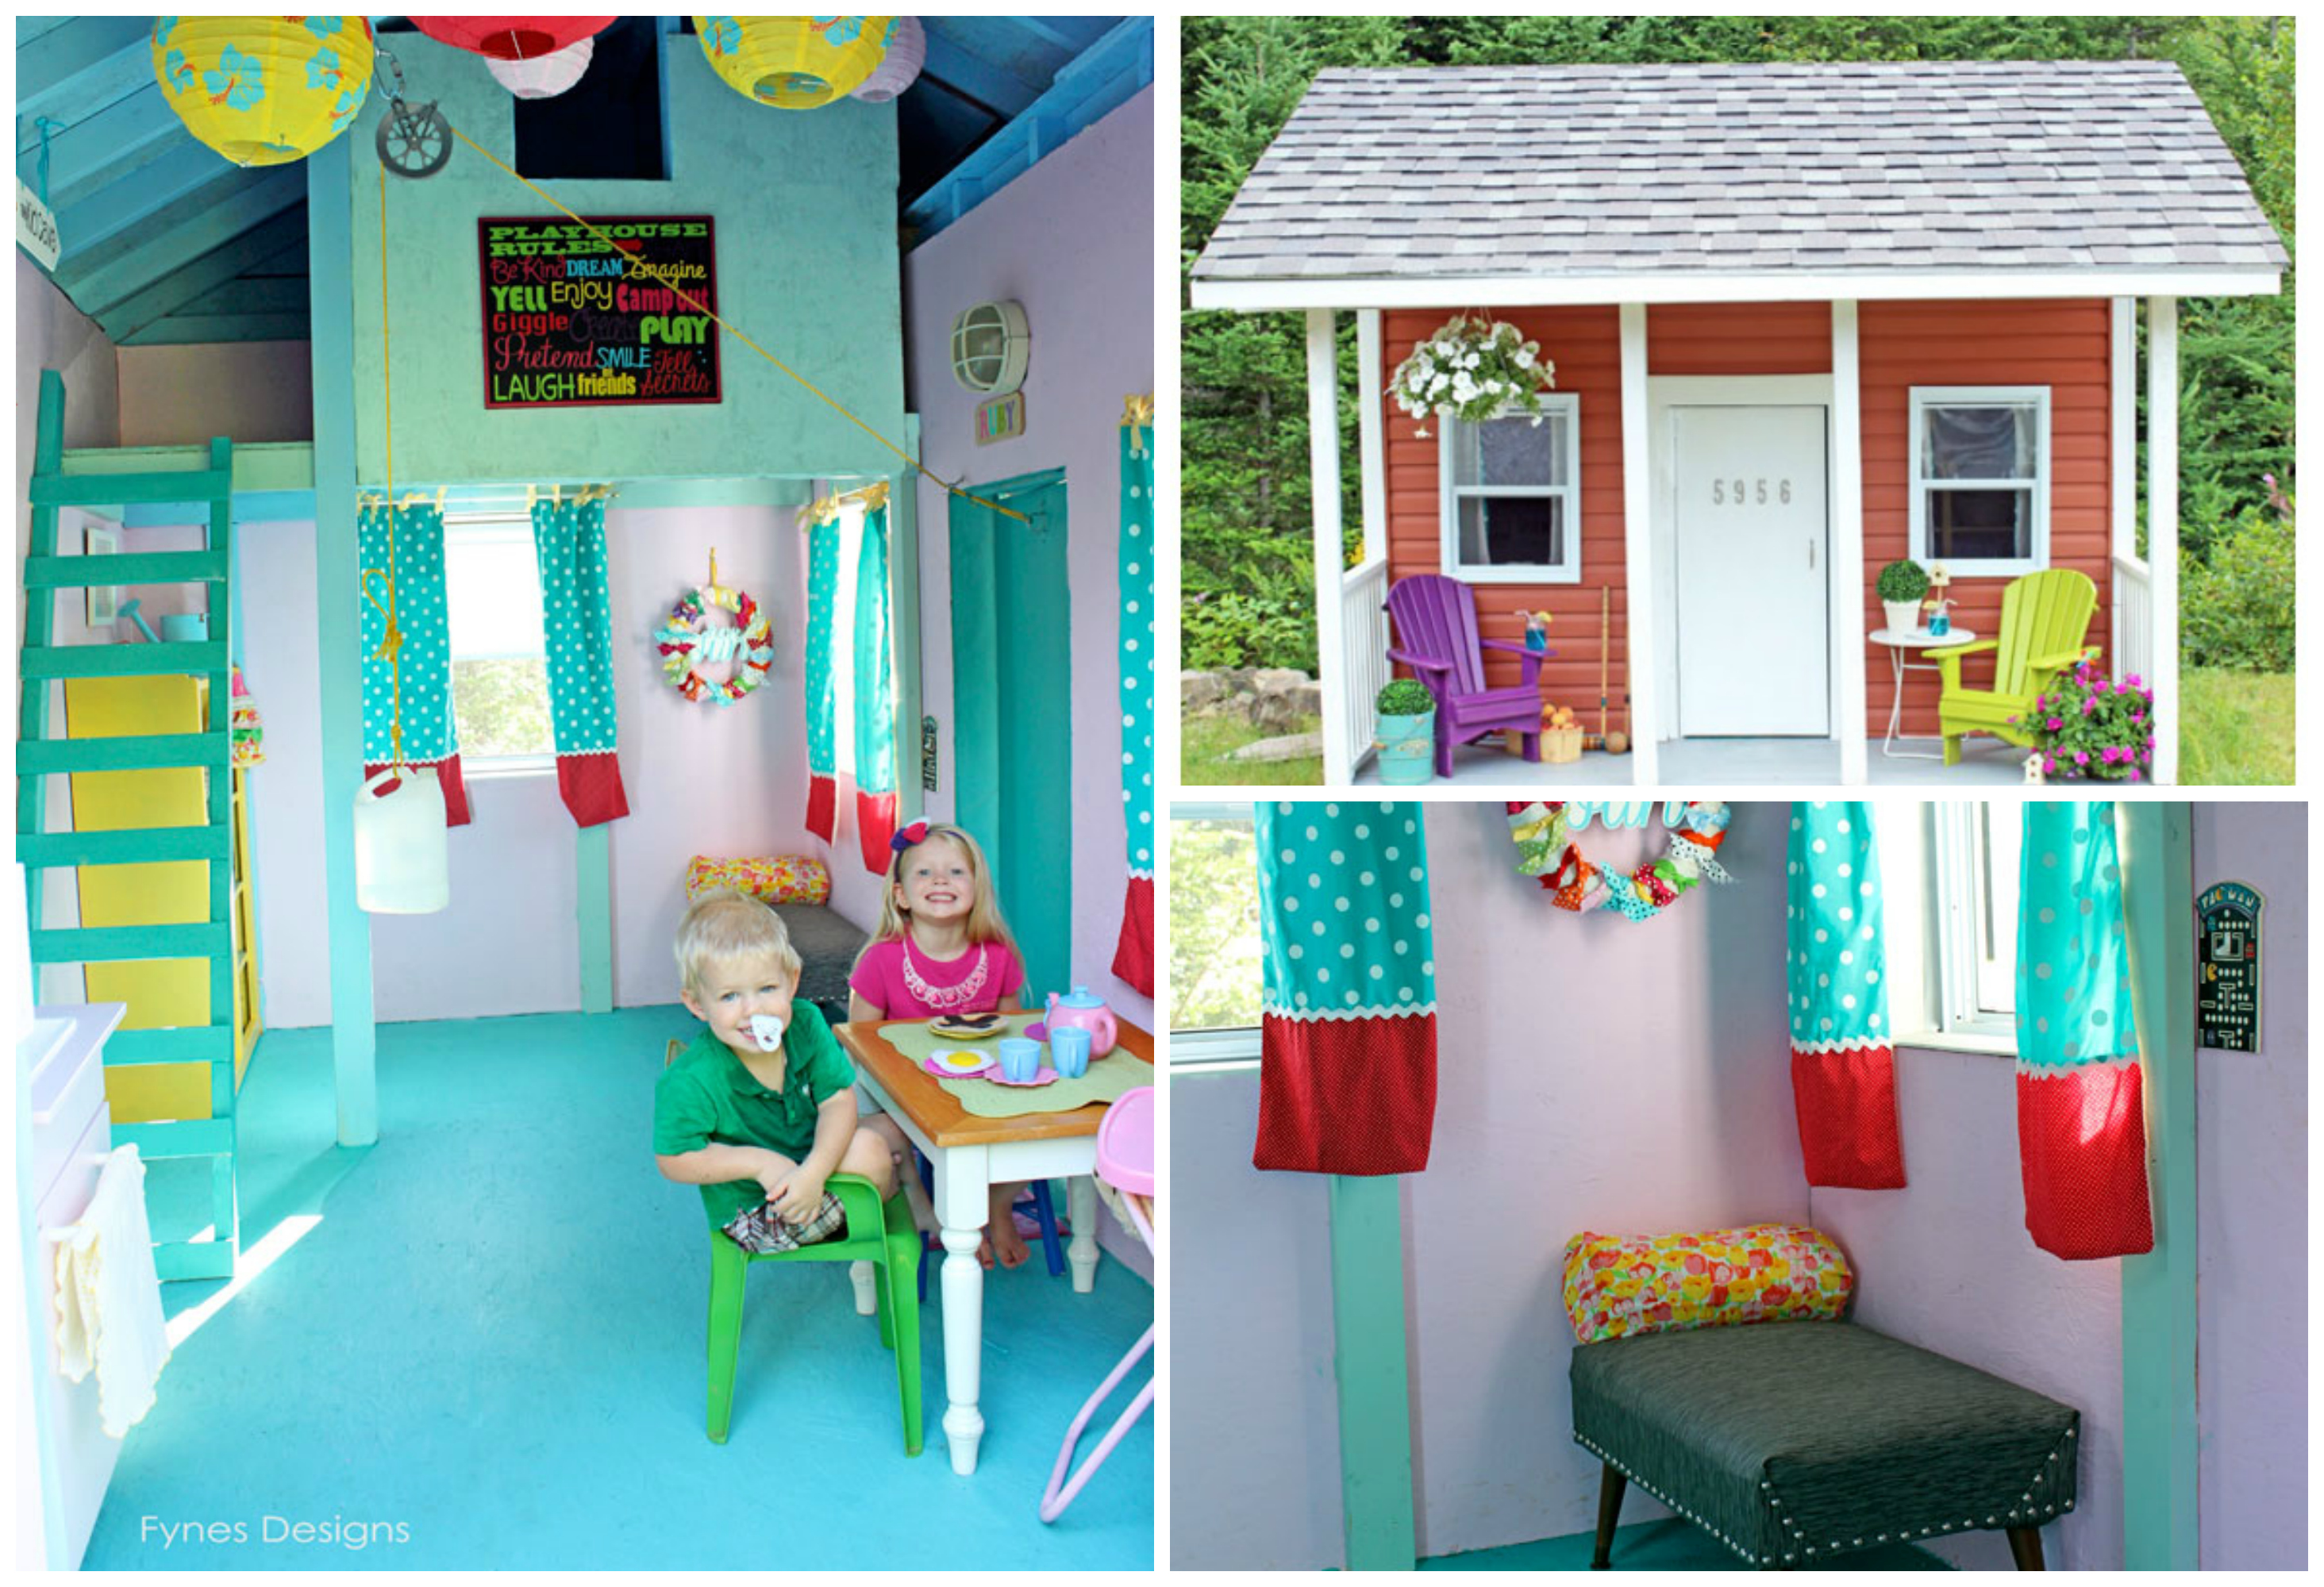 Playhouse Plans Blog Plans DIY Free Download tongue and ...